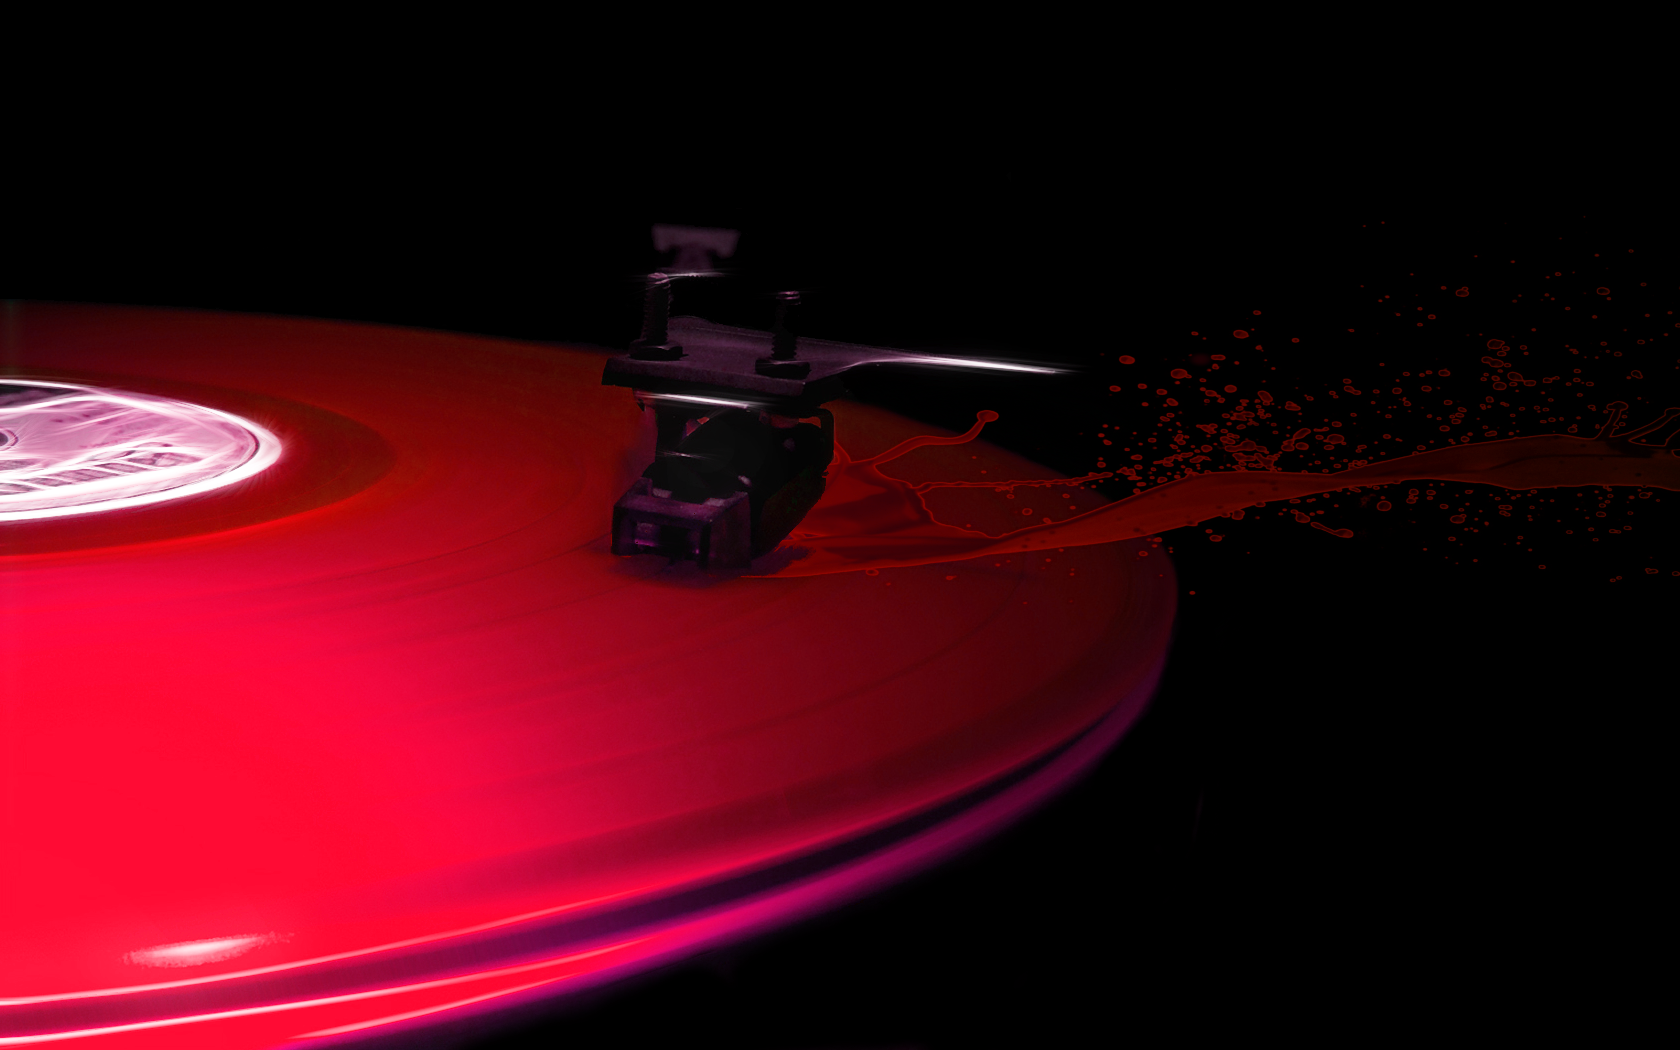 turntable wallpaper HD 1680x1050